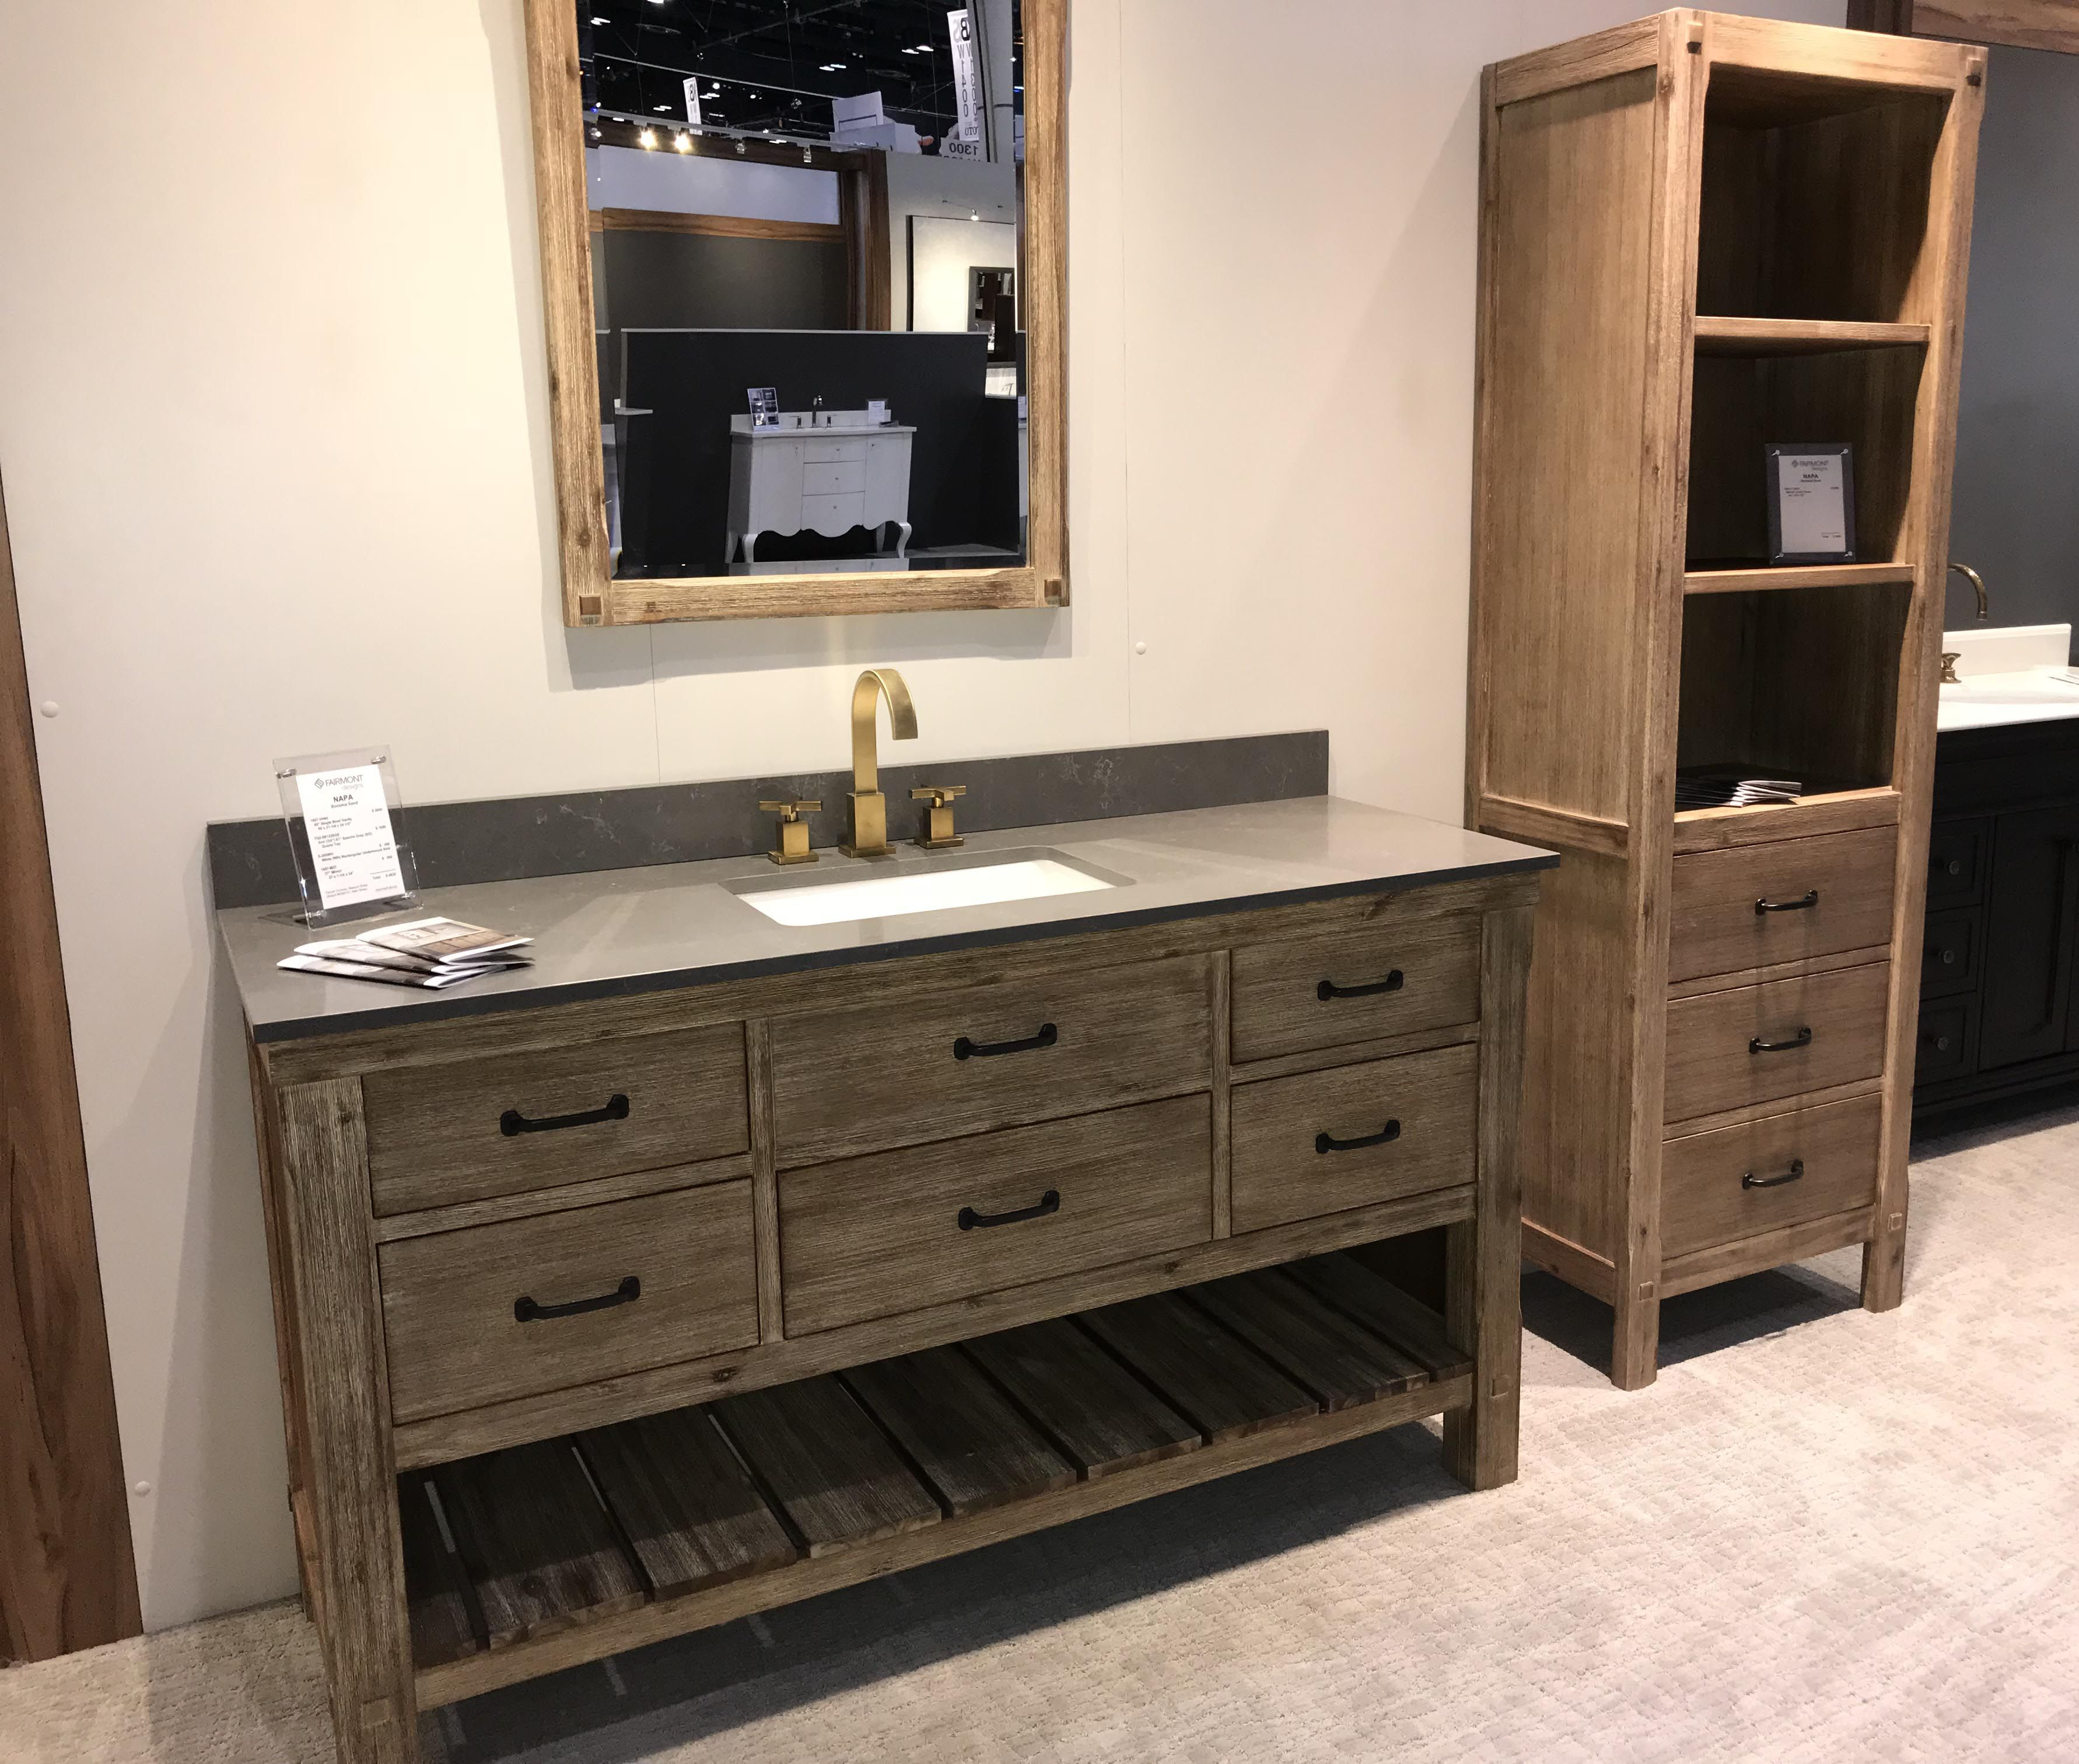 Napa 60 Single Bowl Vanity With Linen Tower Fdbath Kbis2018